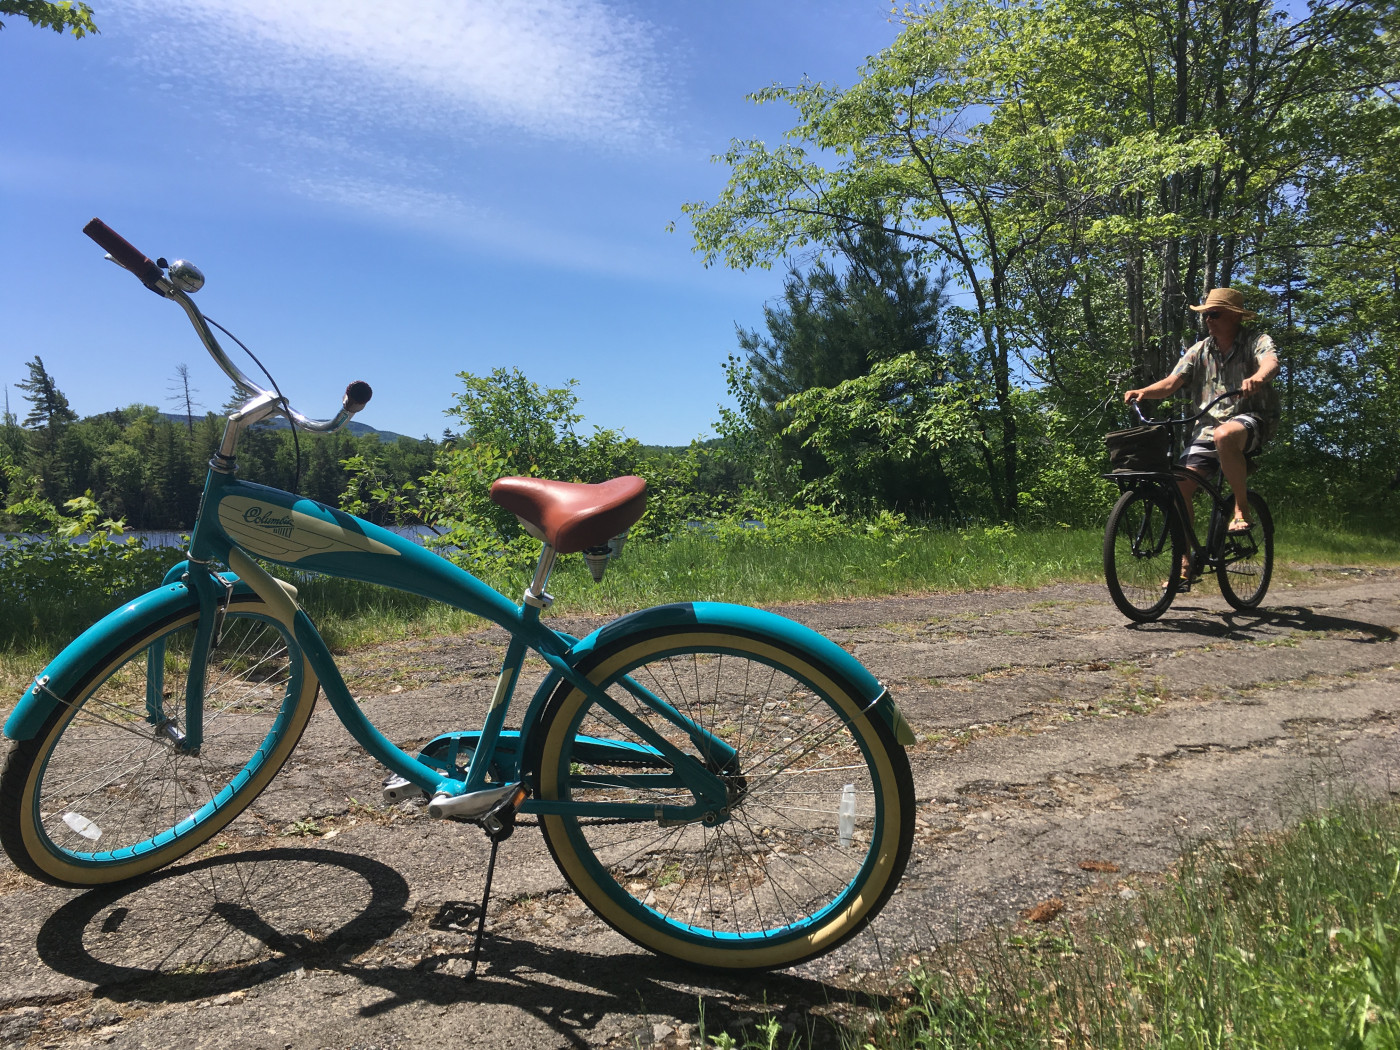 Our beach cruiser bikes! Retro and stealth modes.